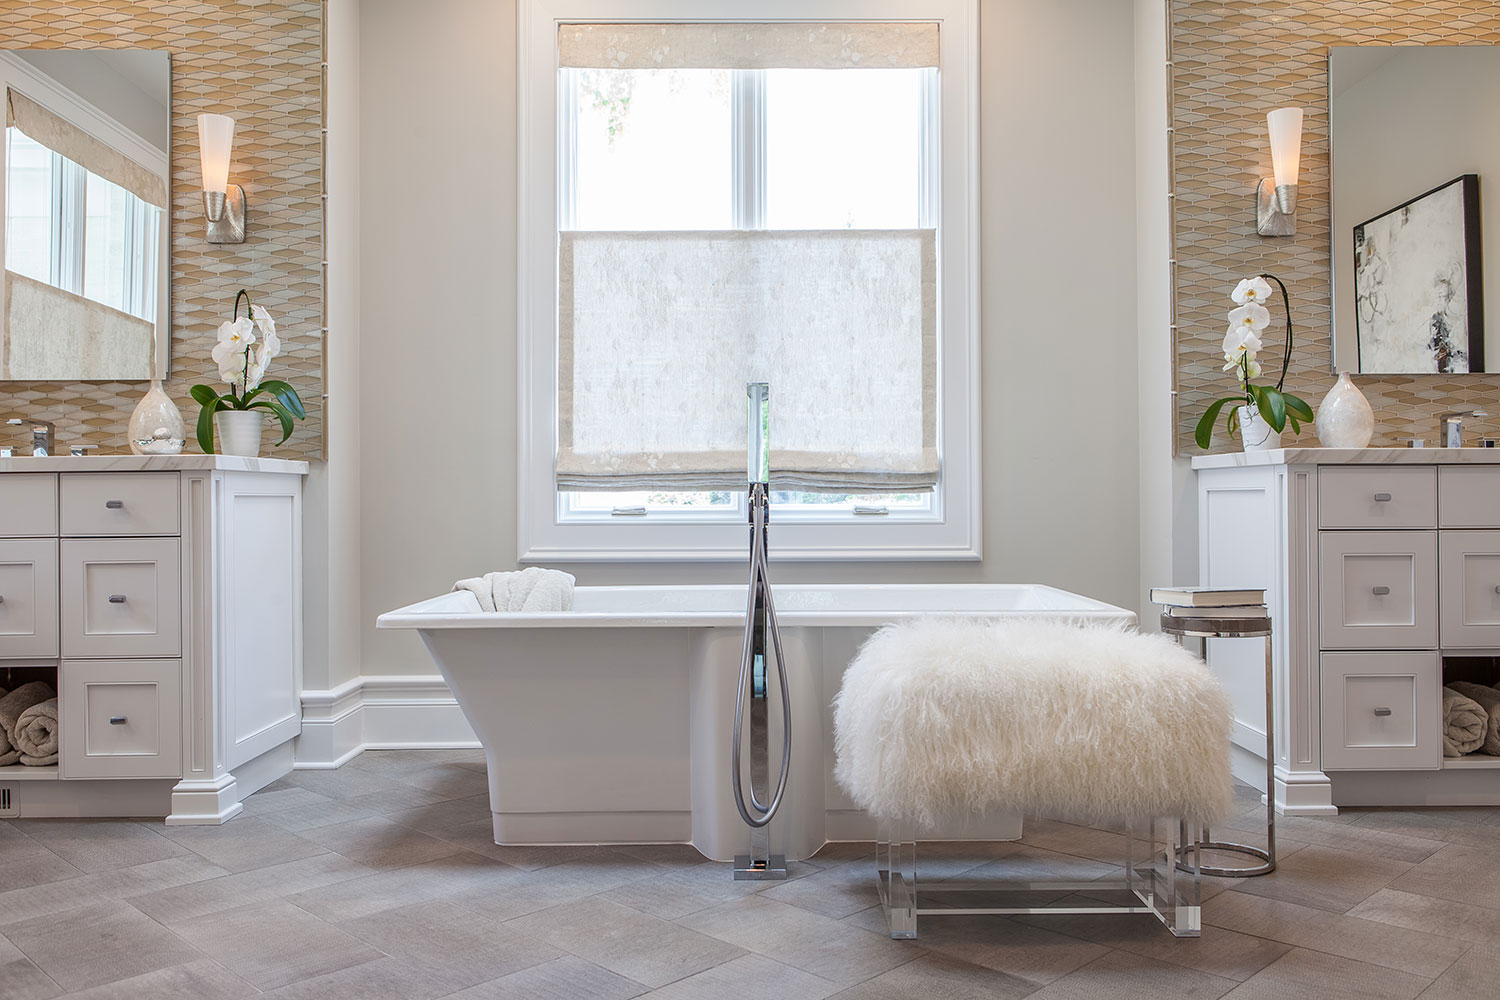 Rectangular Freestanding Tub with Faux Goat-Hair Bench